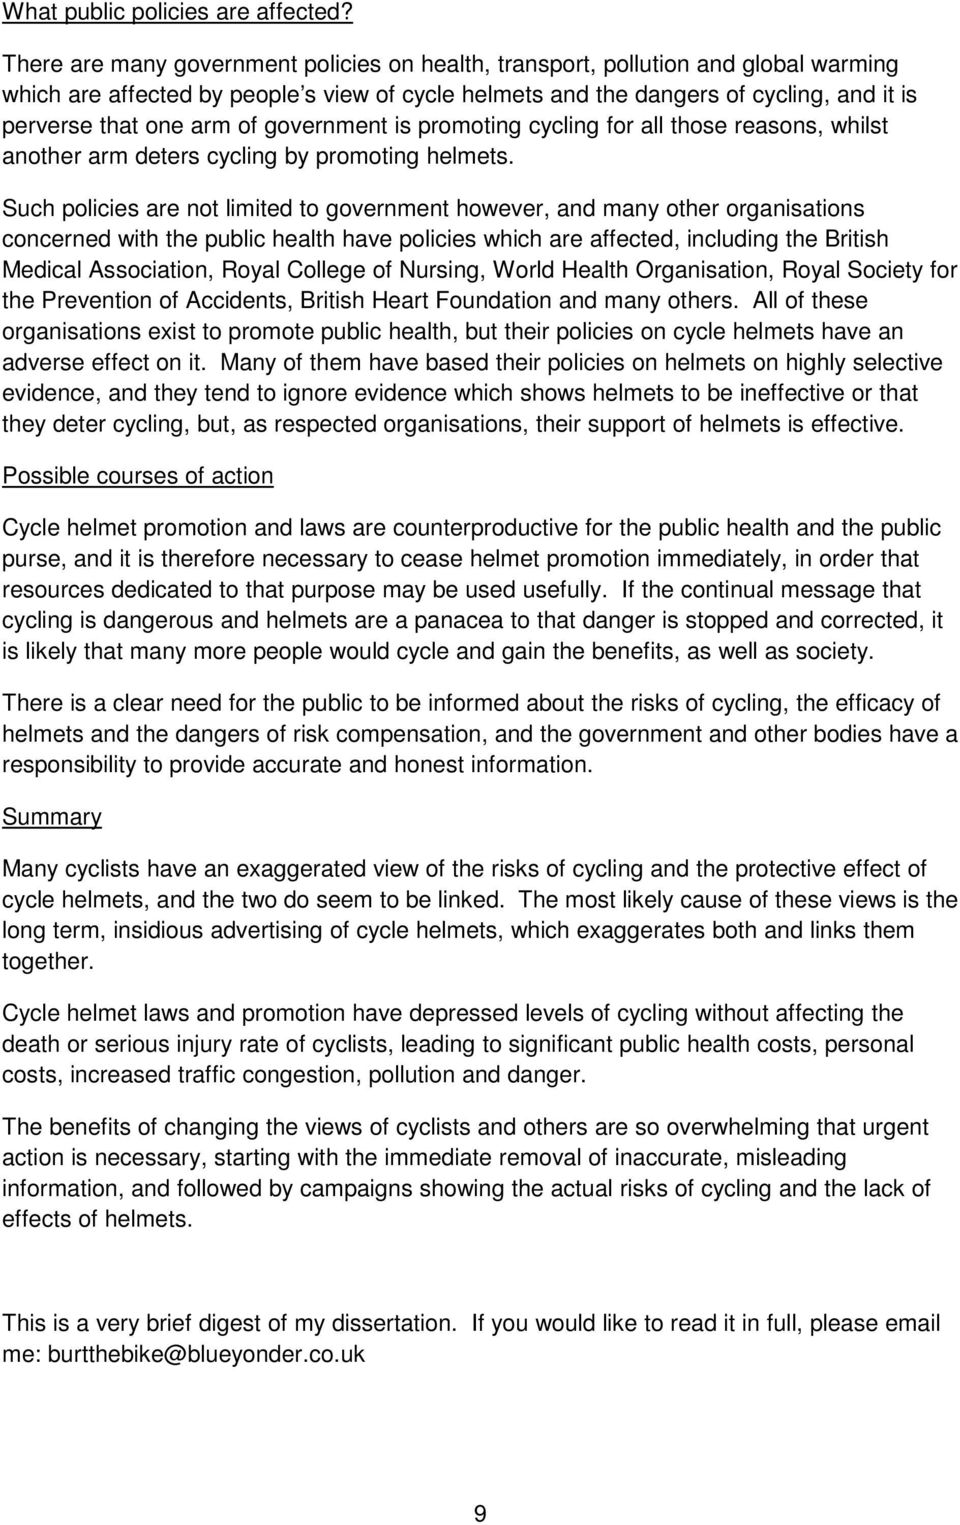 of government is promoting cycling for all those reasons, whilst another arm deters cycling by promoting helmets.